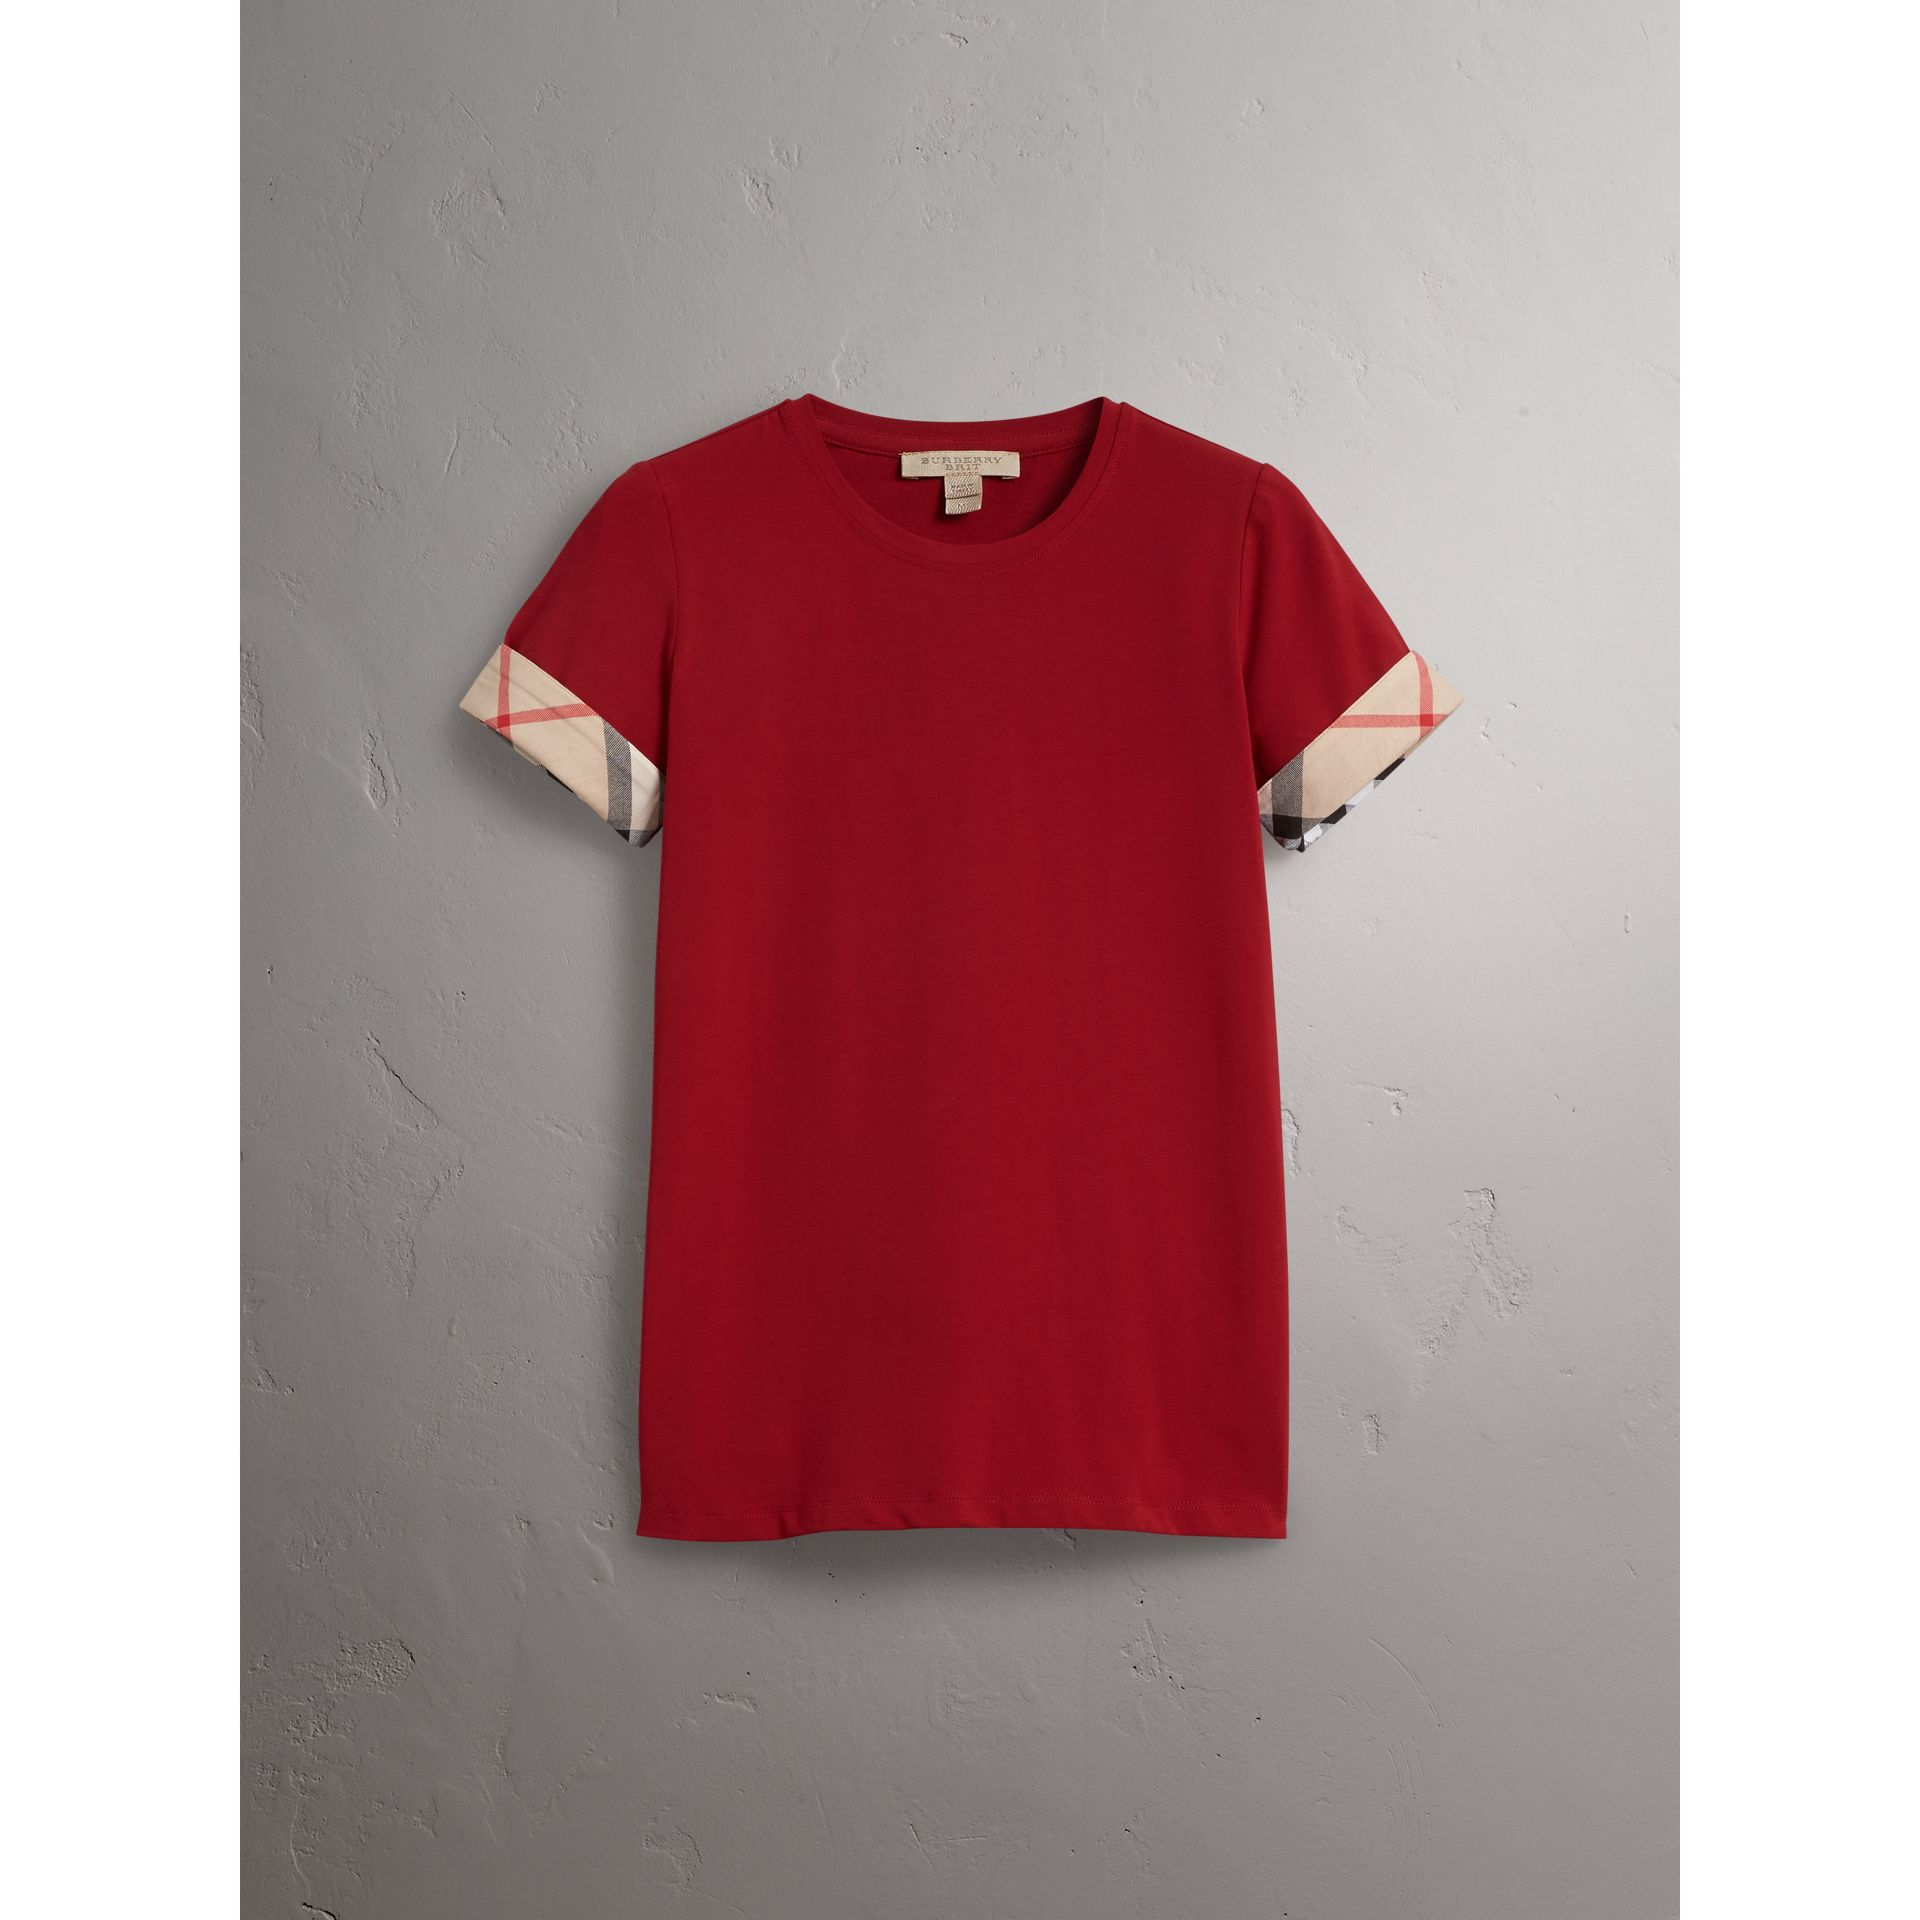 Check Cuff Stretch Cotton T-Shirt in Lacquer Red - Women | Burberry - gallery image 3